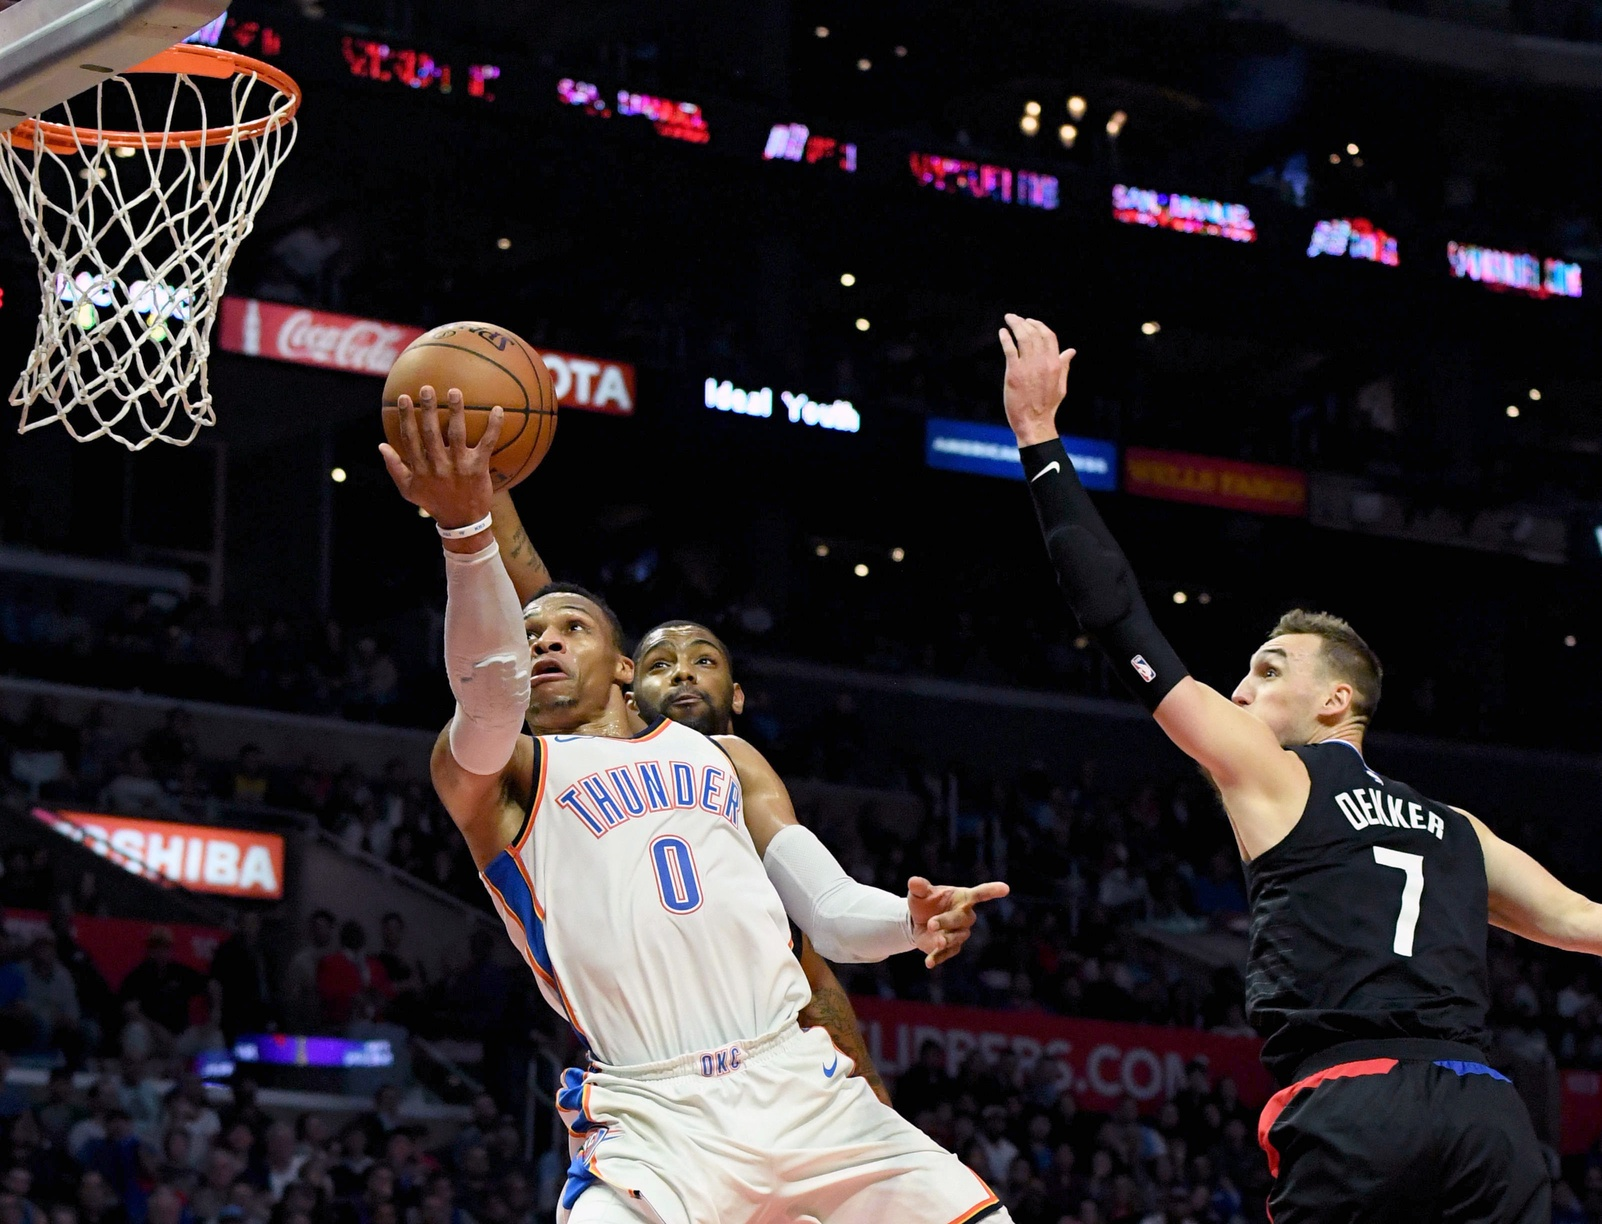 Clippers Hope to Bounce Back Against Thunder